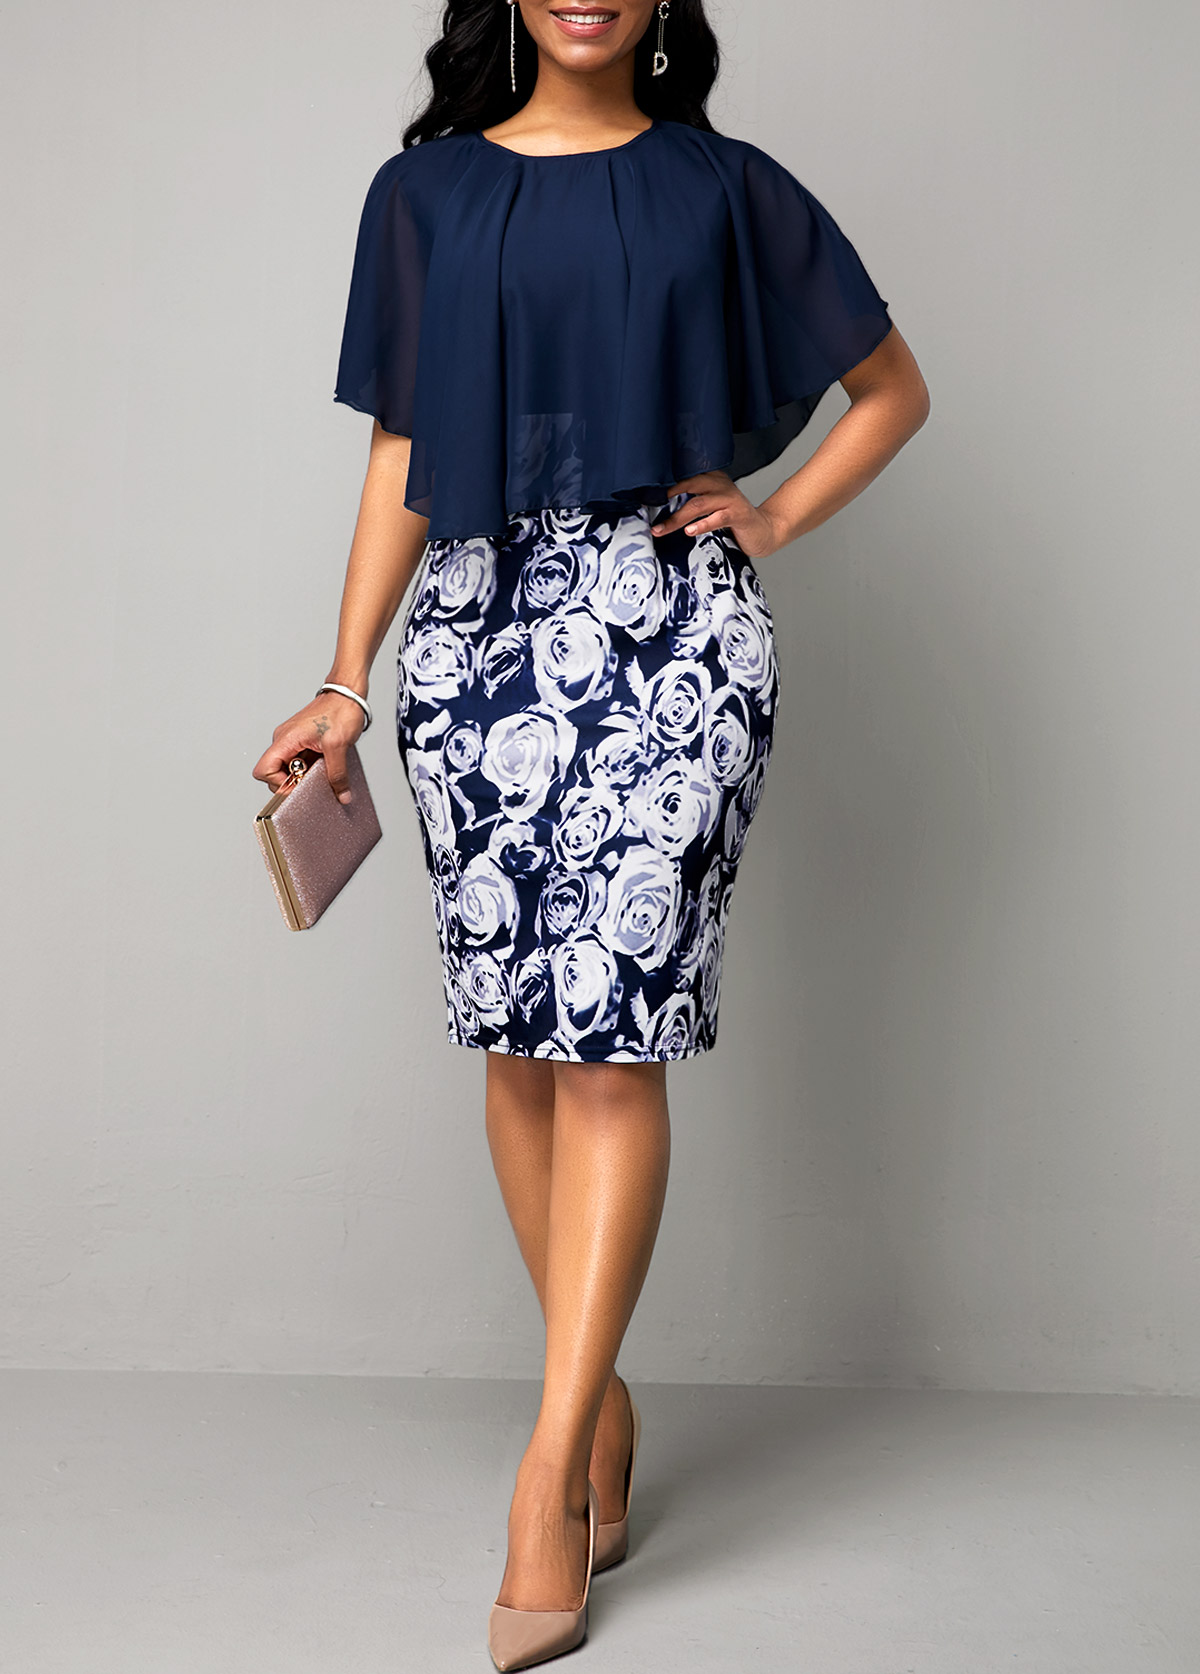 Faux Two Piece Navy Blue Flower Print Dress